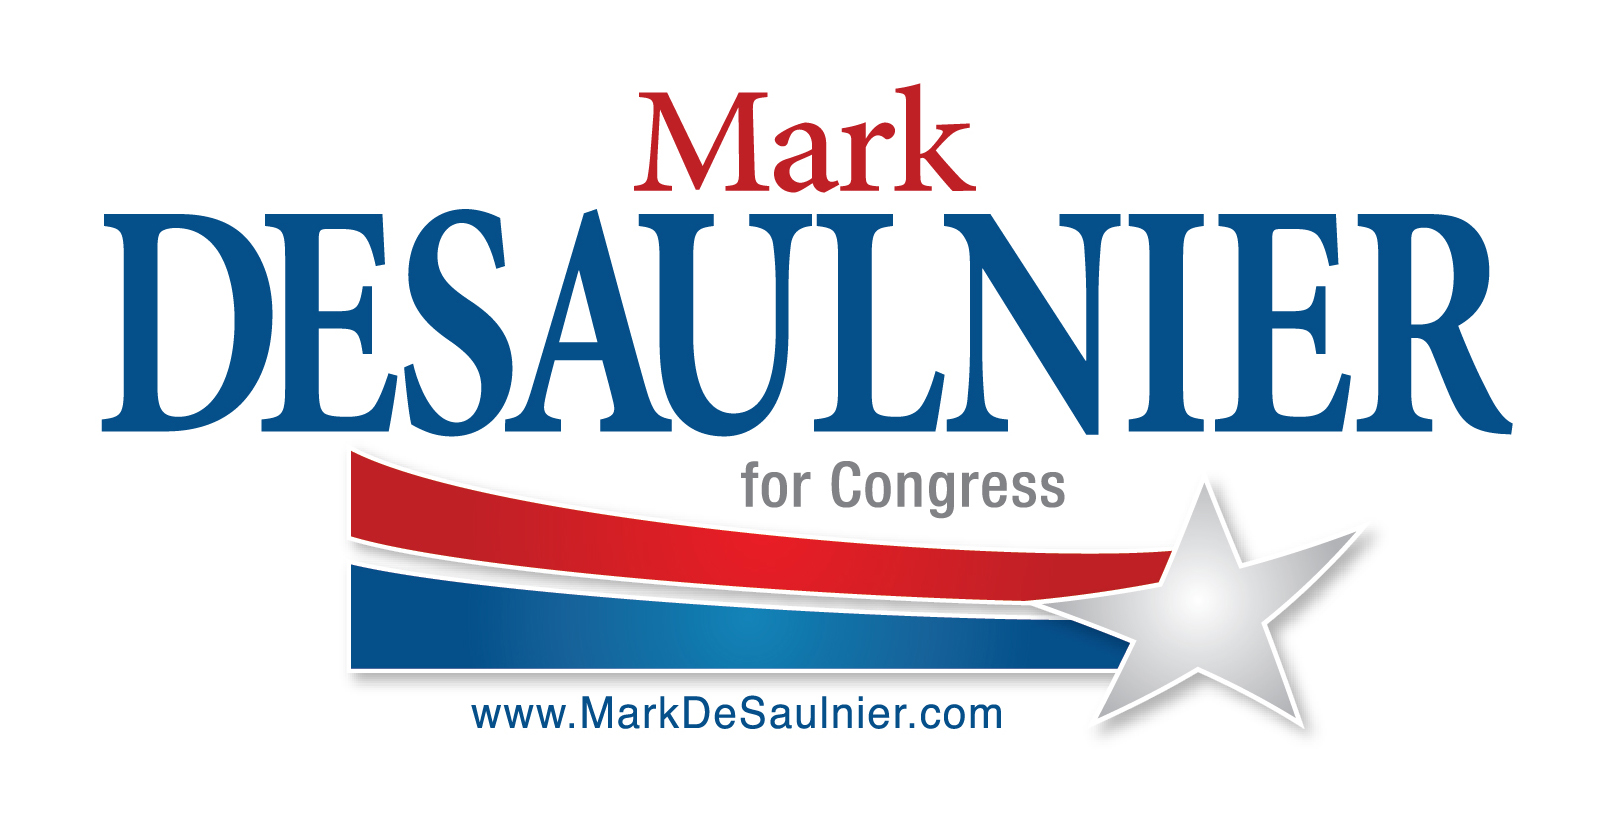 http://desaulnierforcongress.com/wp-content/uploads/2014/02/Mark-DeSauliner-for-Congress-Logo.jpg